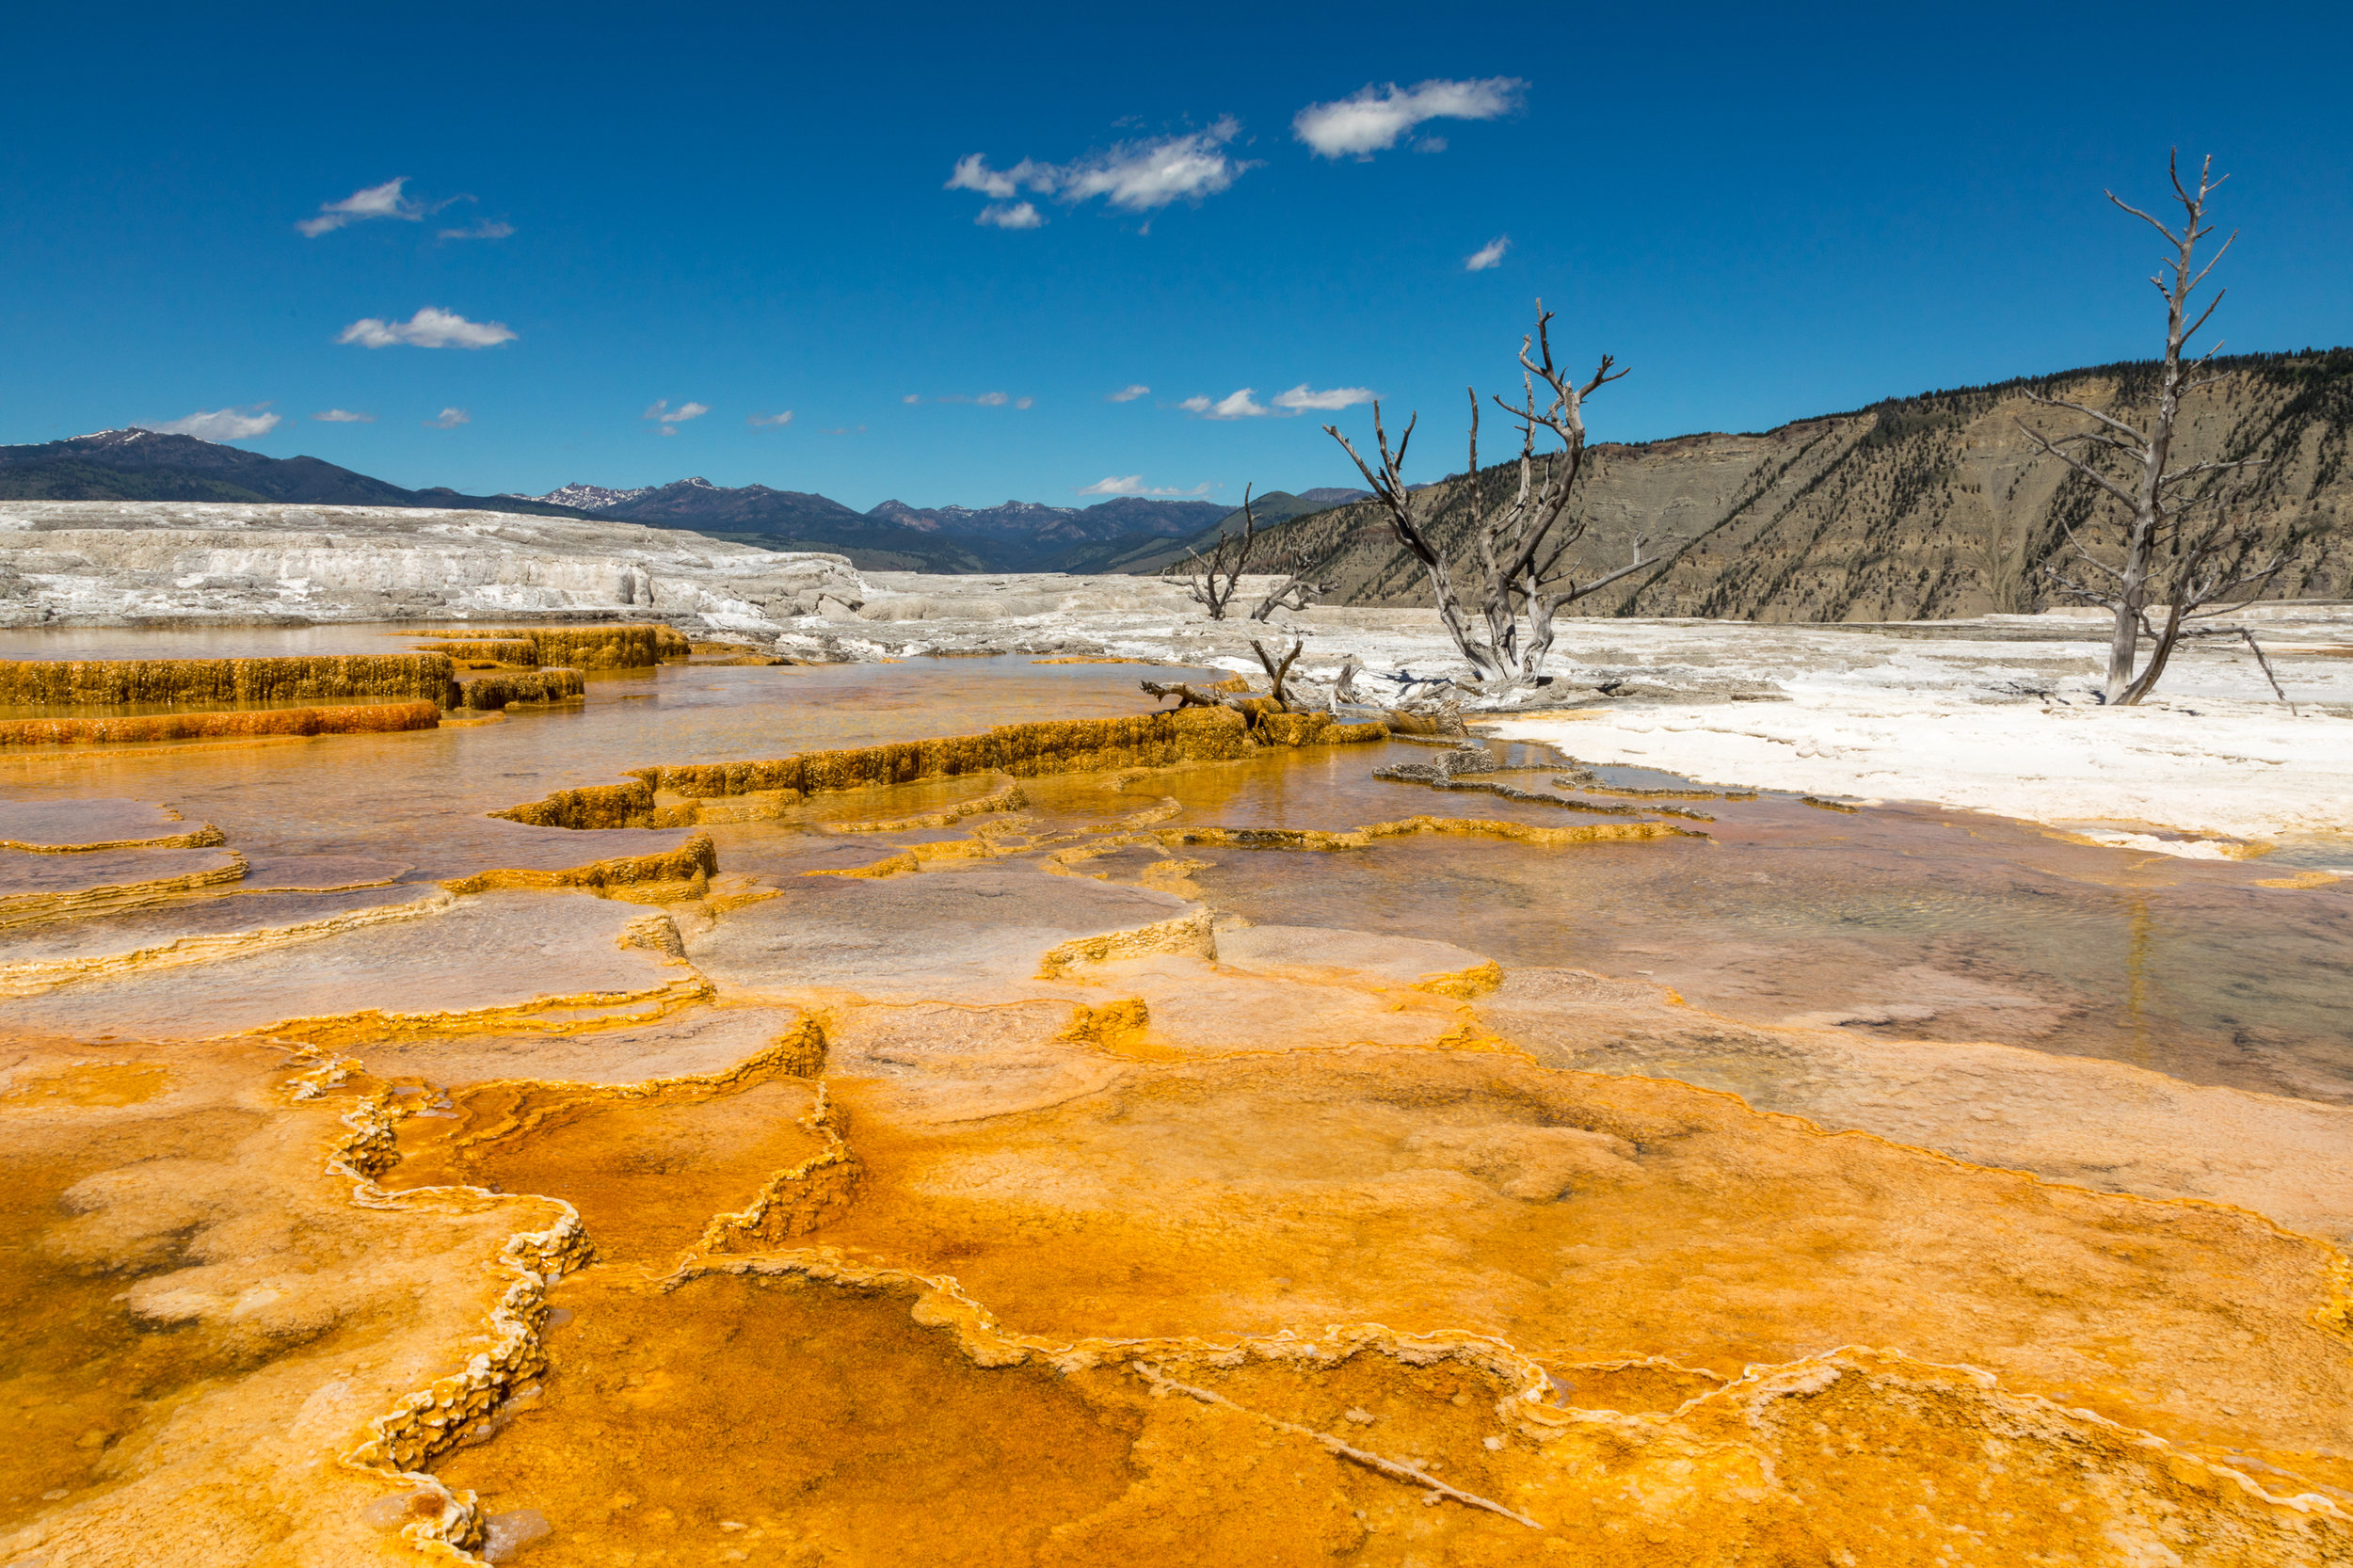 Mammoth Hot Springs, Yellowstone National Park, Image # 7356